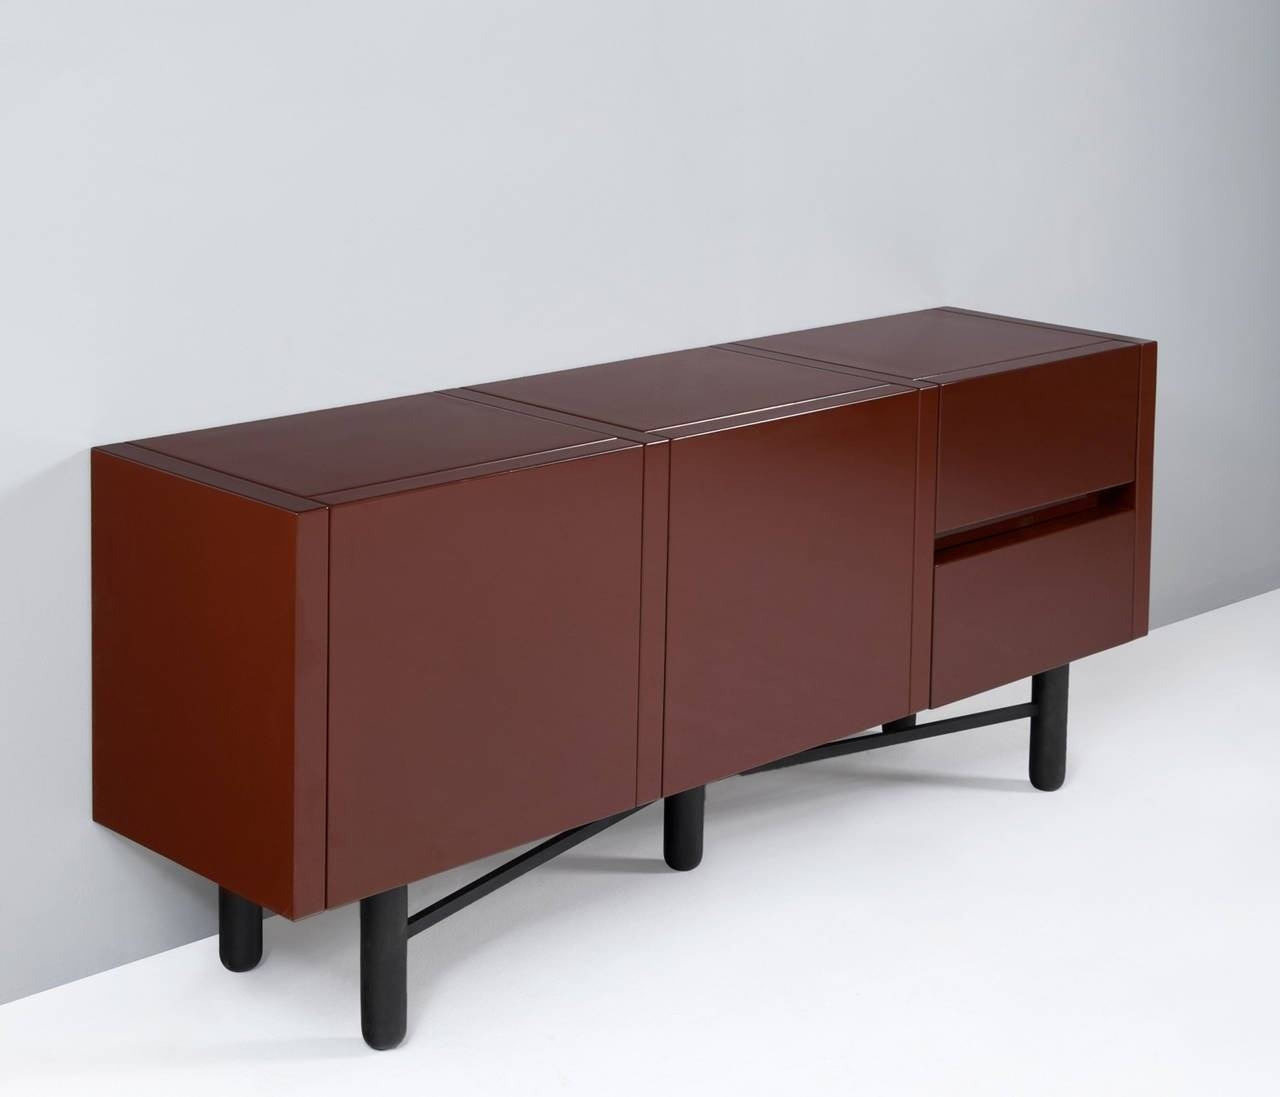 Roche Bobois Red Lacquered High Gloss Sideboard For Sale At 1Stdibs intended for Black High Gloss Sideboards (Image 24 of 30)